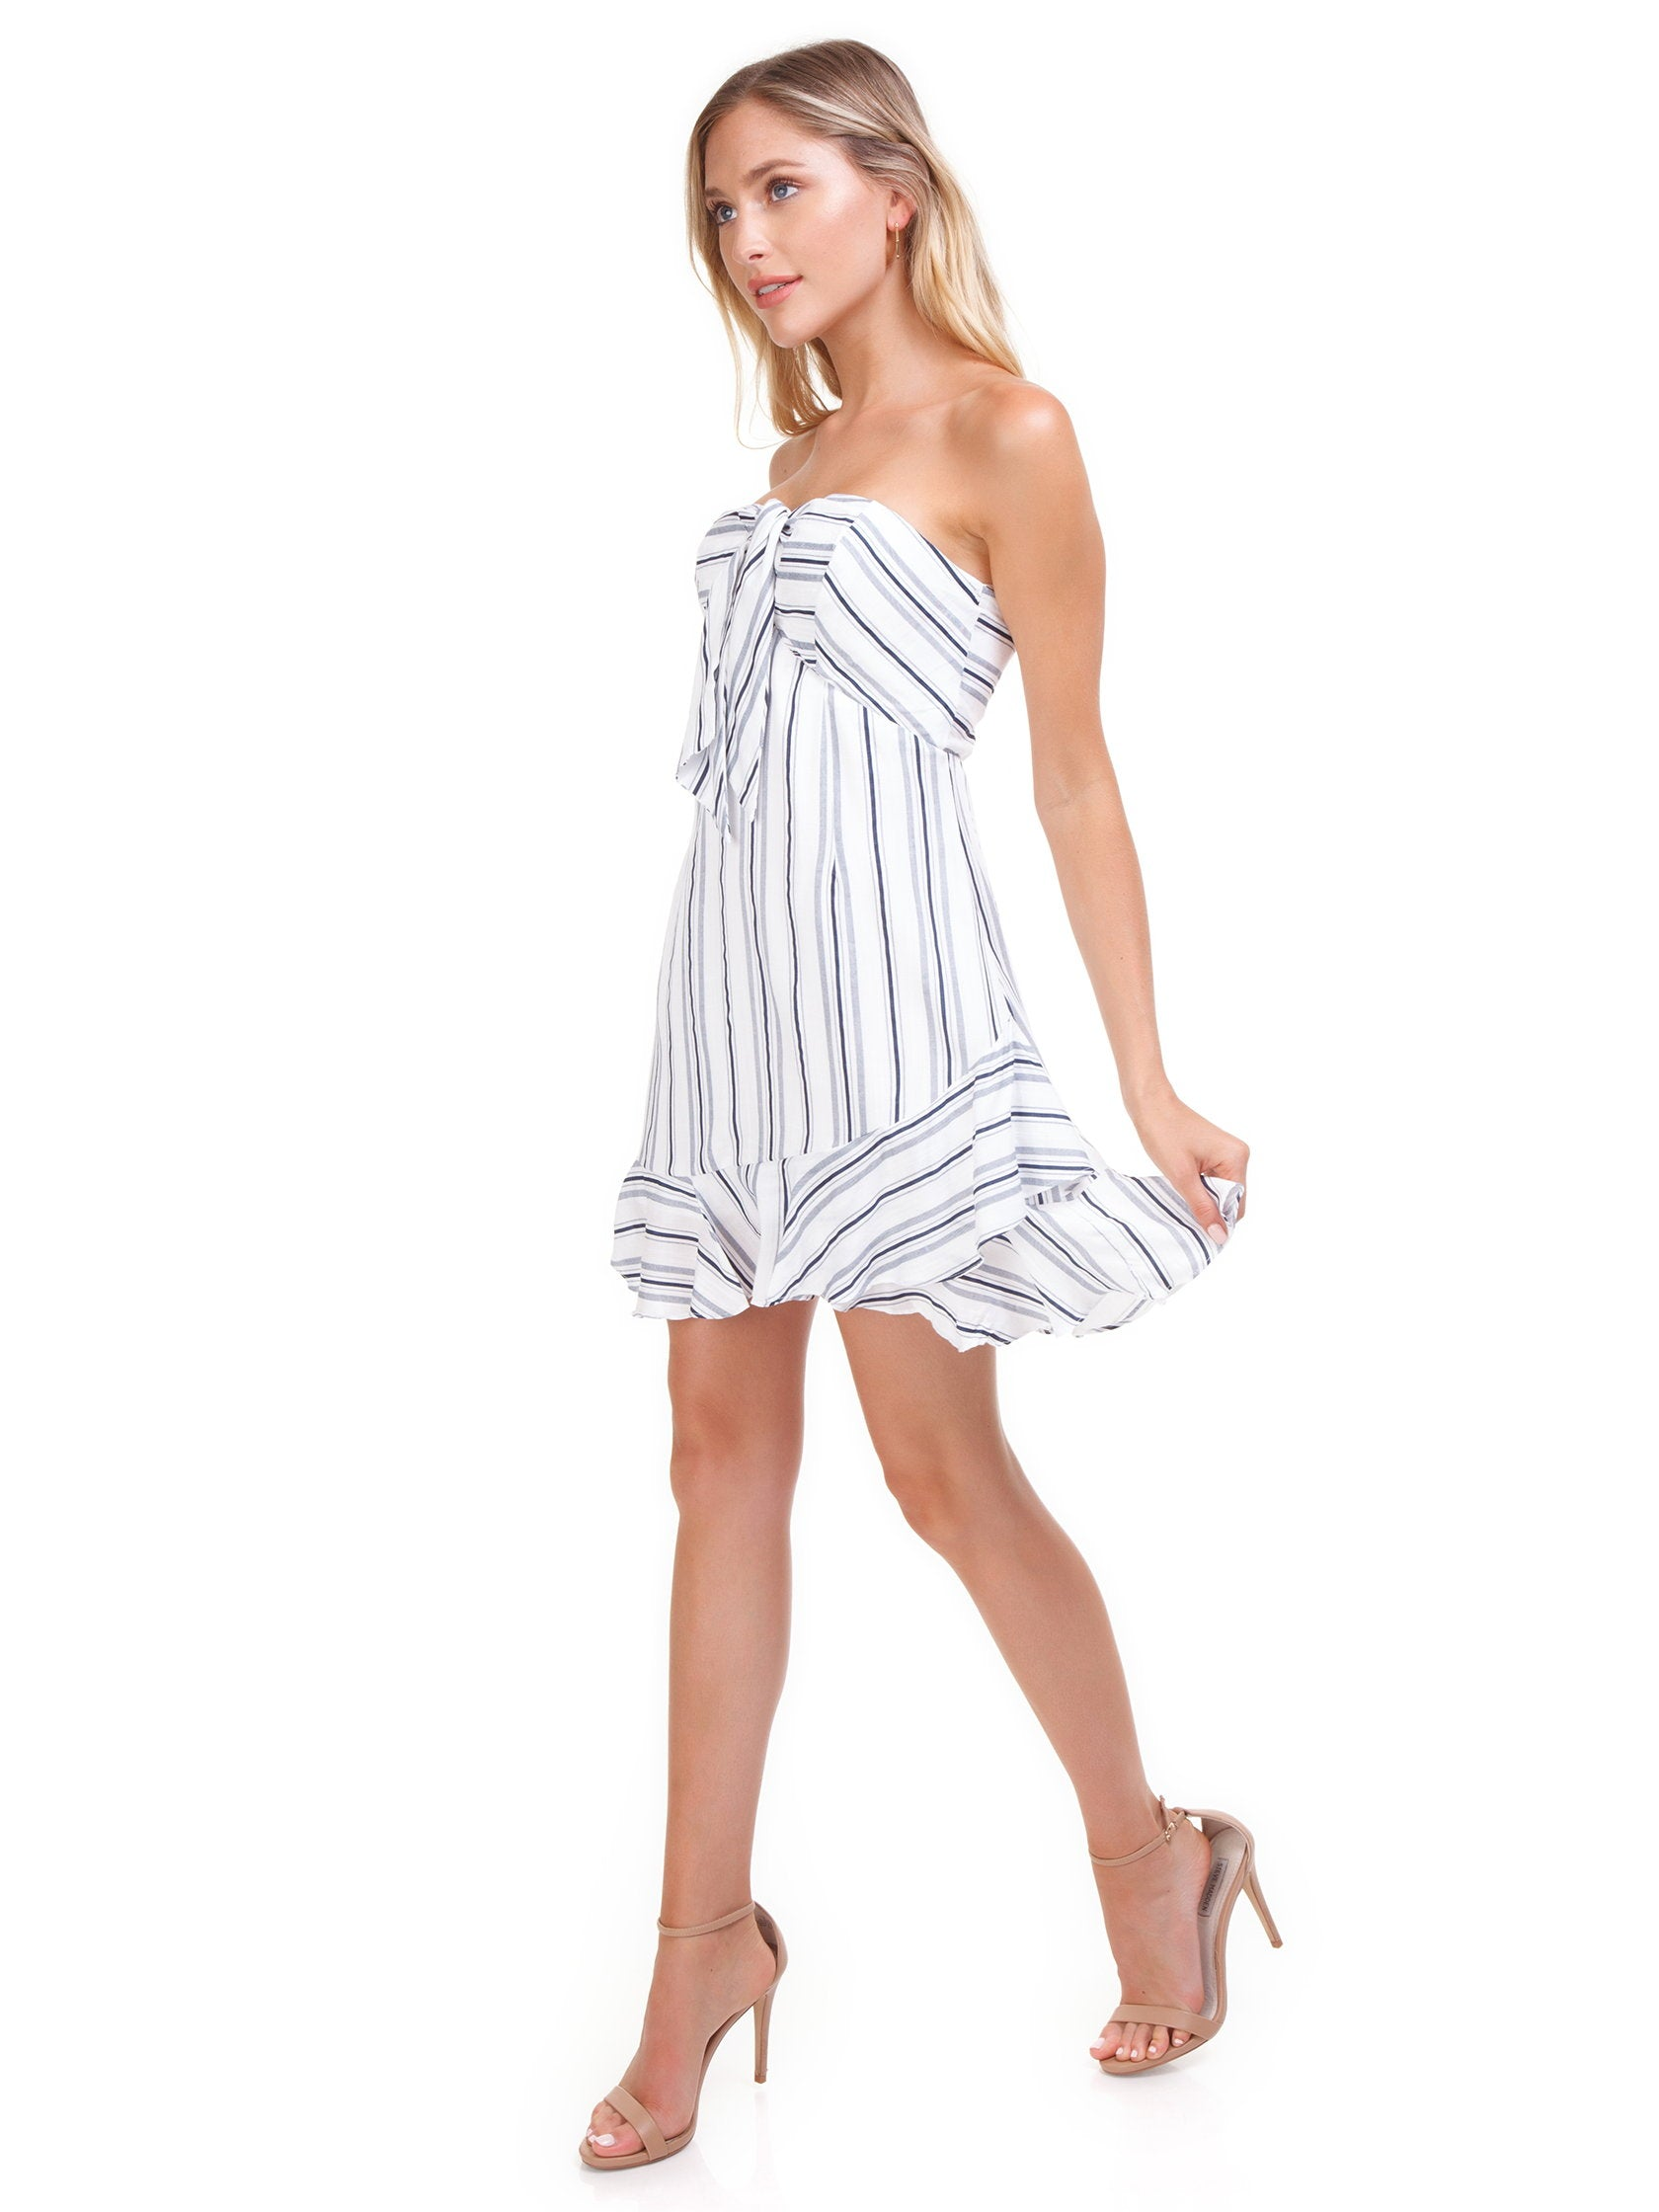 Woman wearing a dress rental from Cotton Candy called Stripe Mini Dress